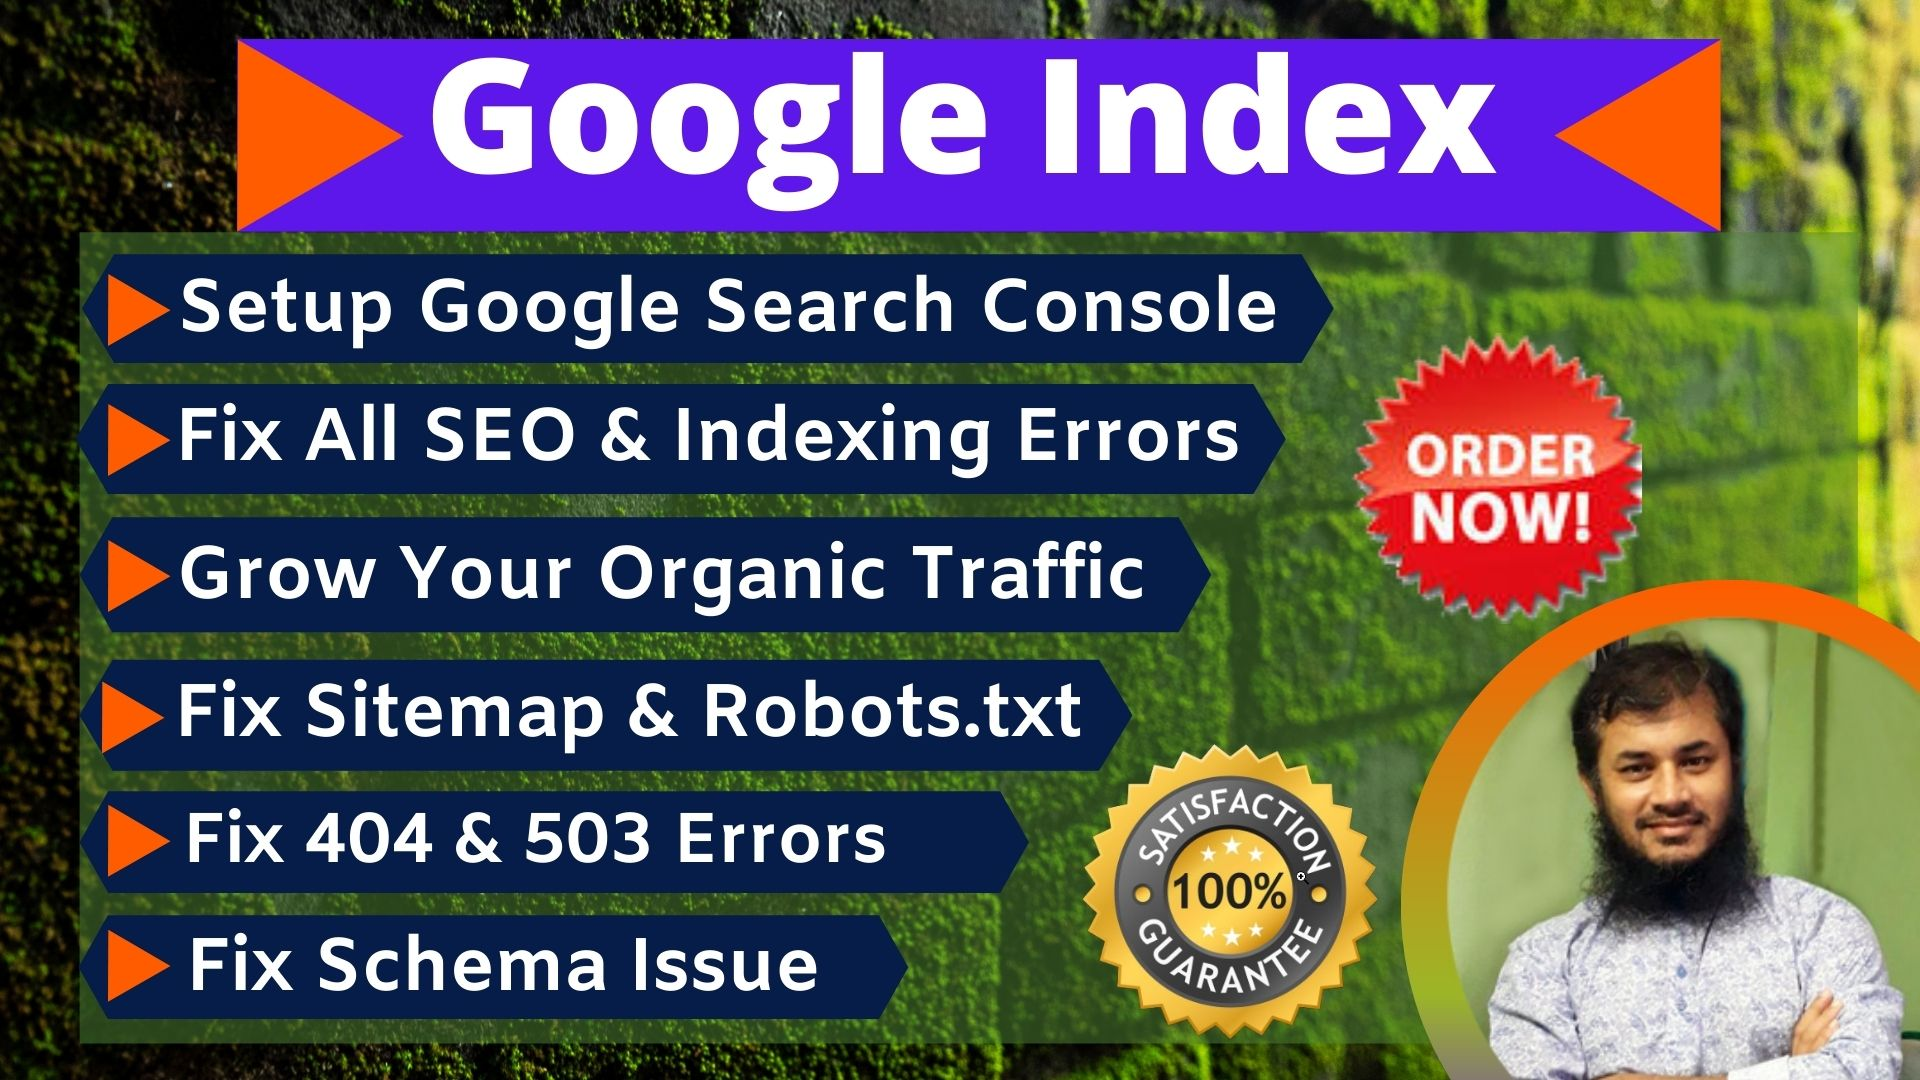 Ready to Fixing Google Index & Search Console Errors